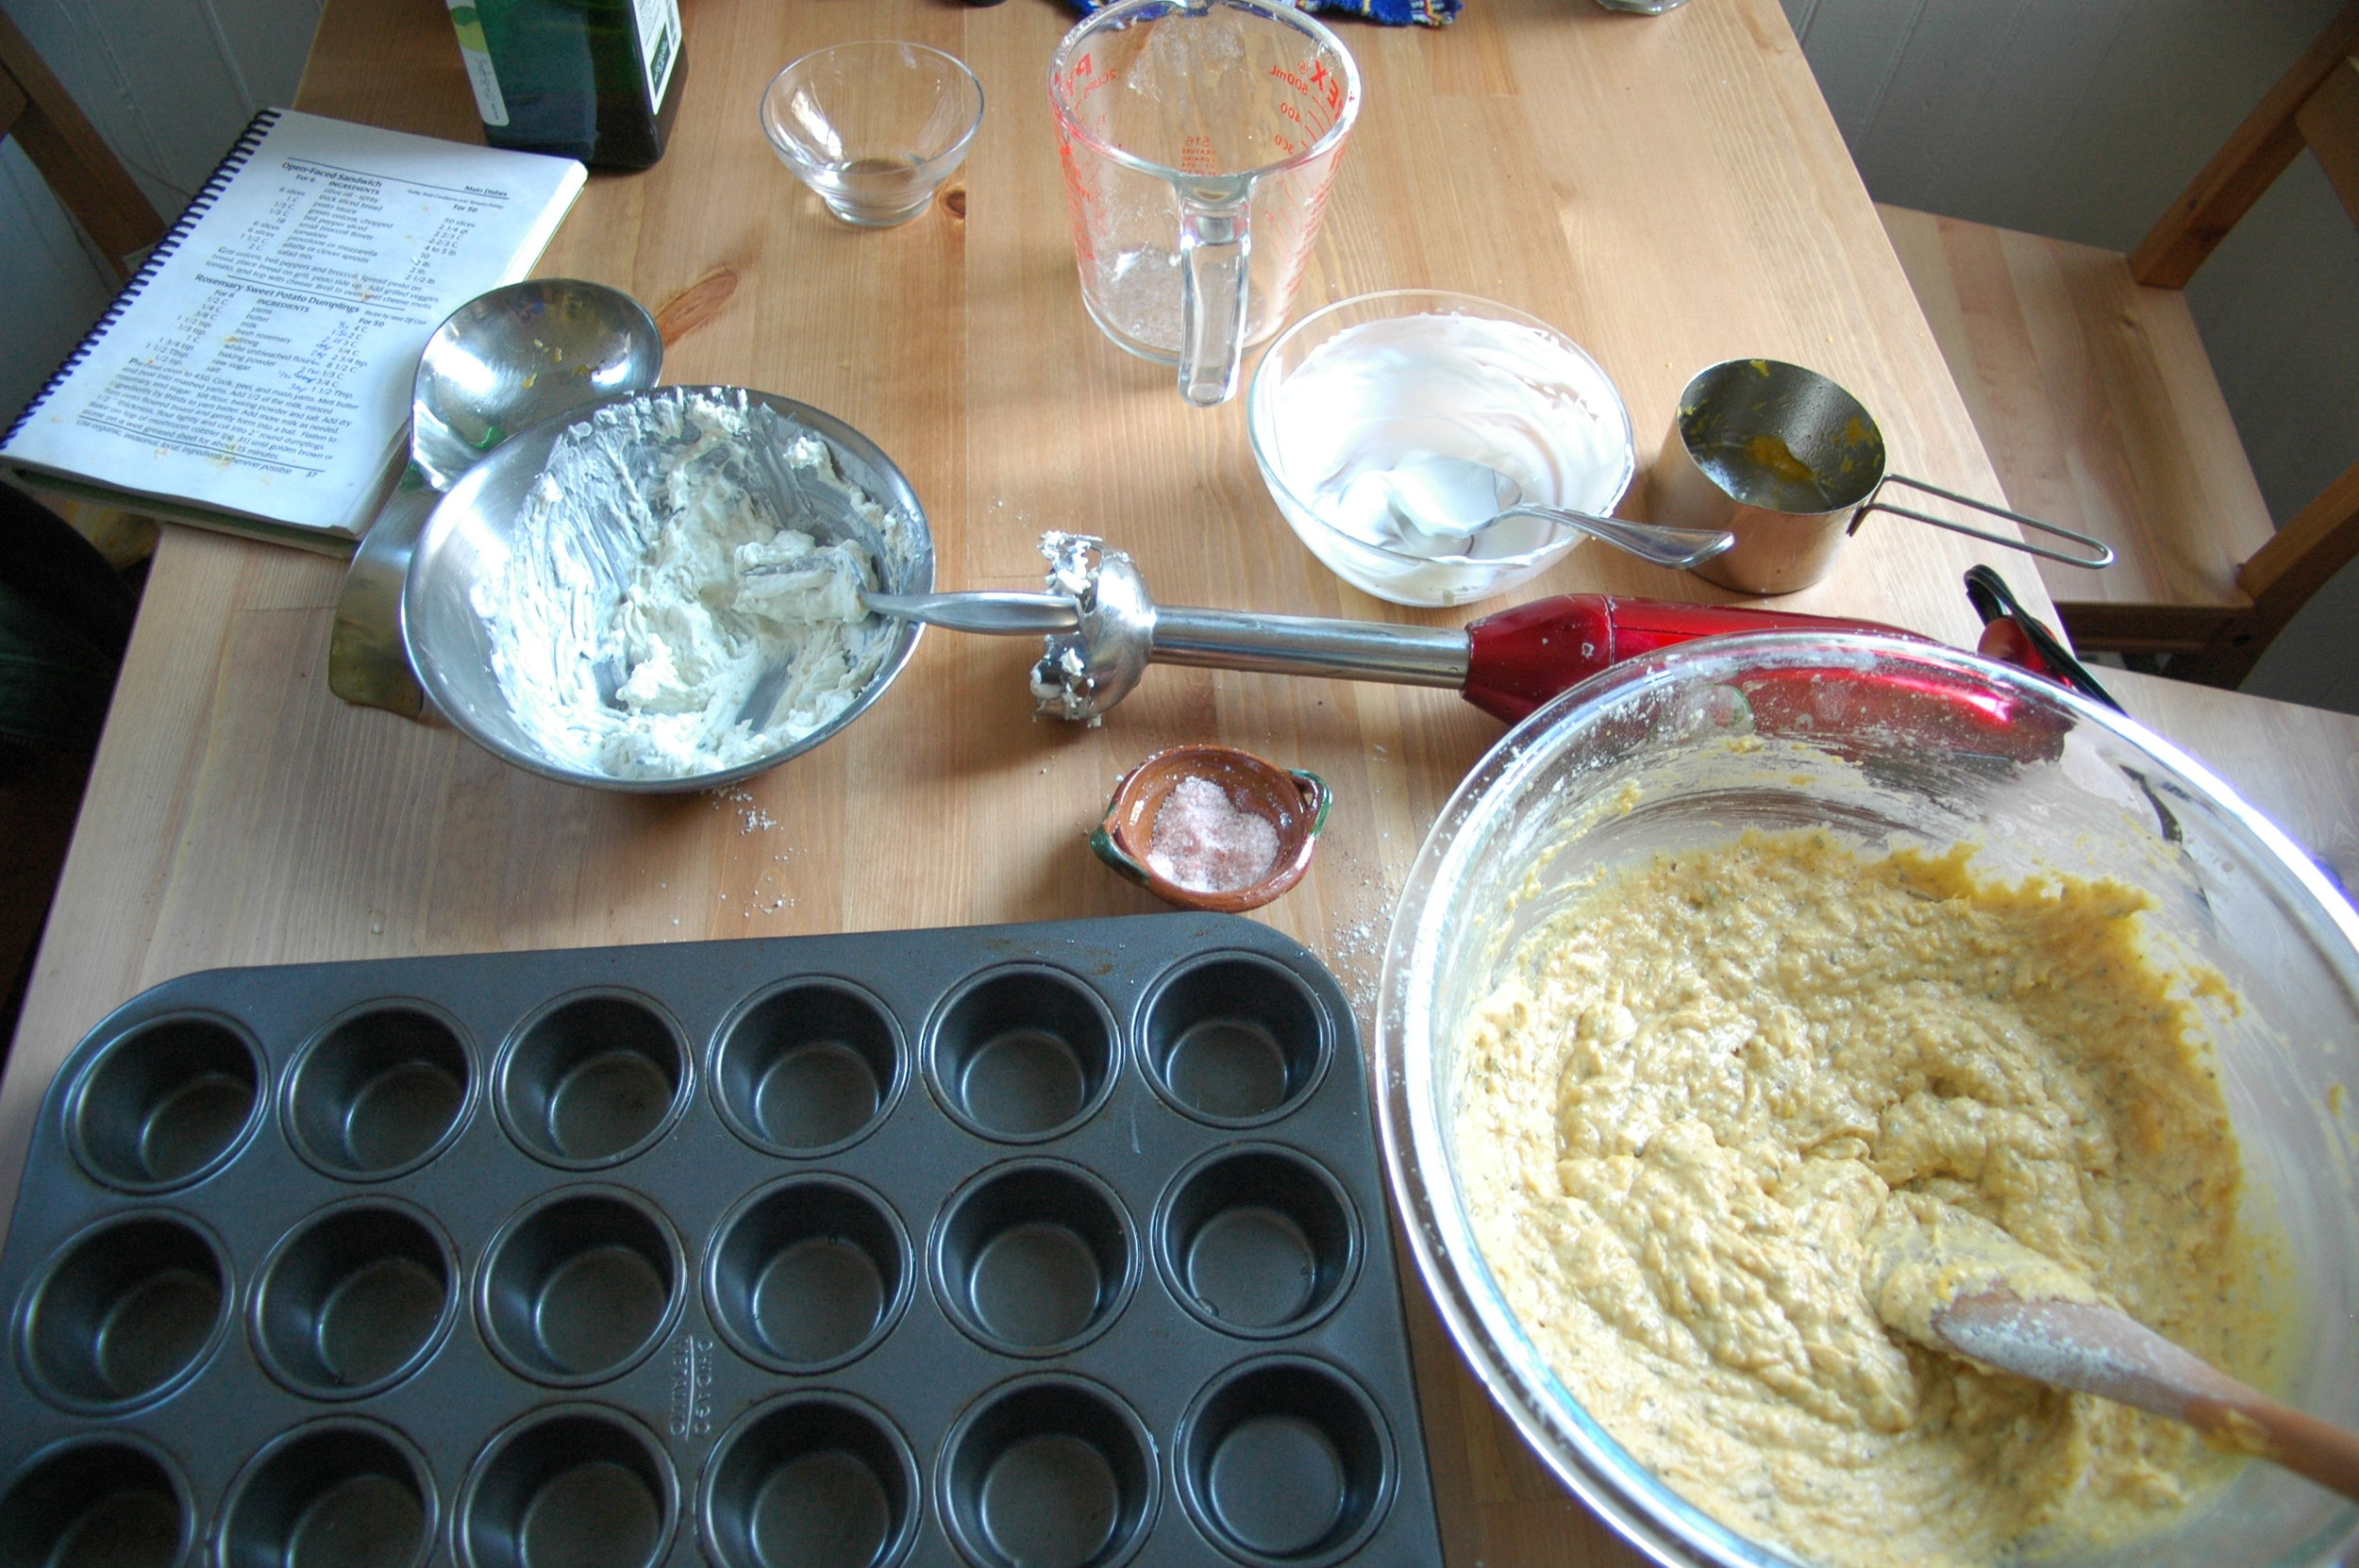 Finished batter on the right, goat cheese mixture up top :)